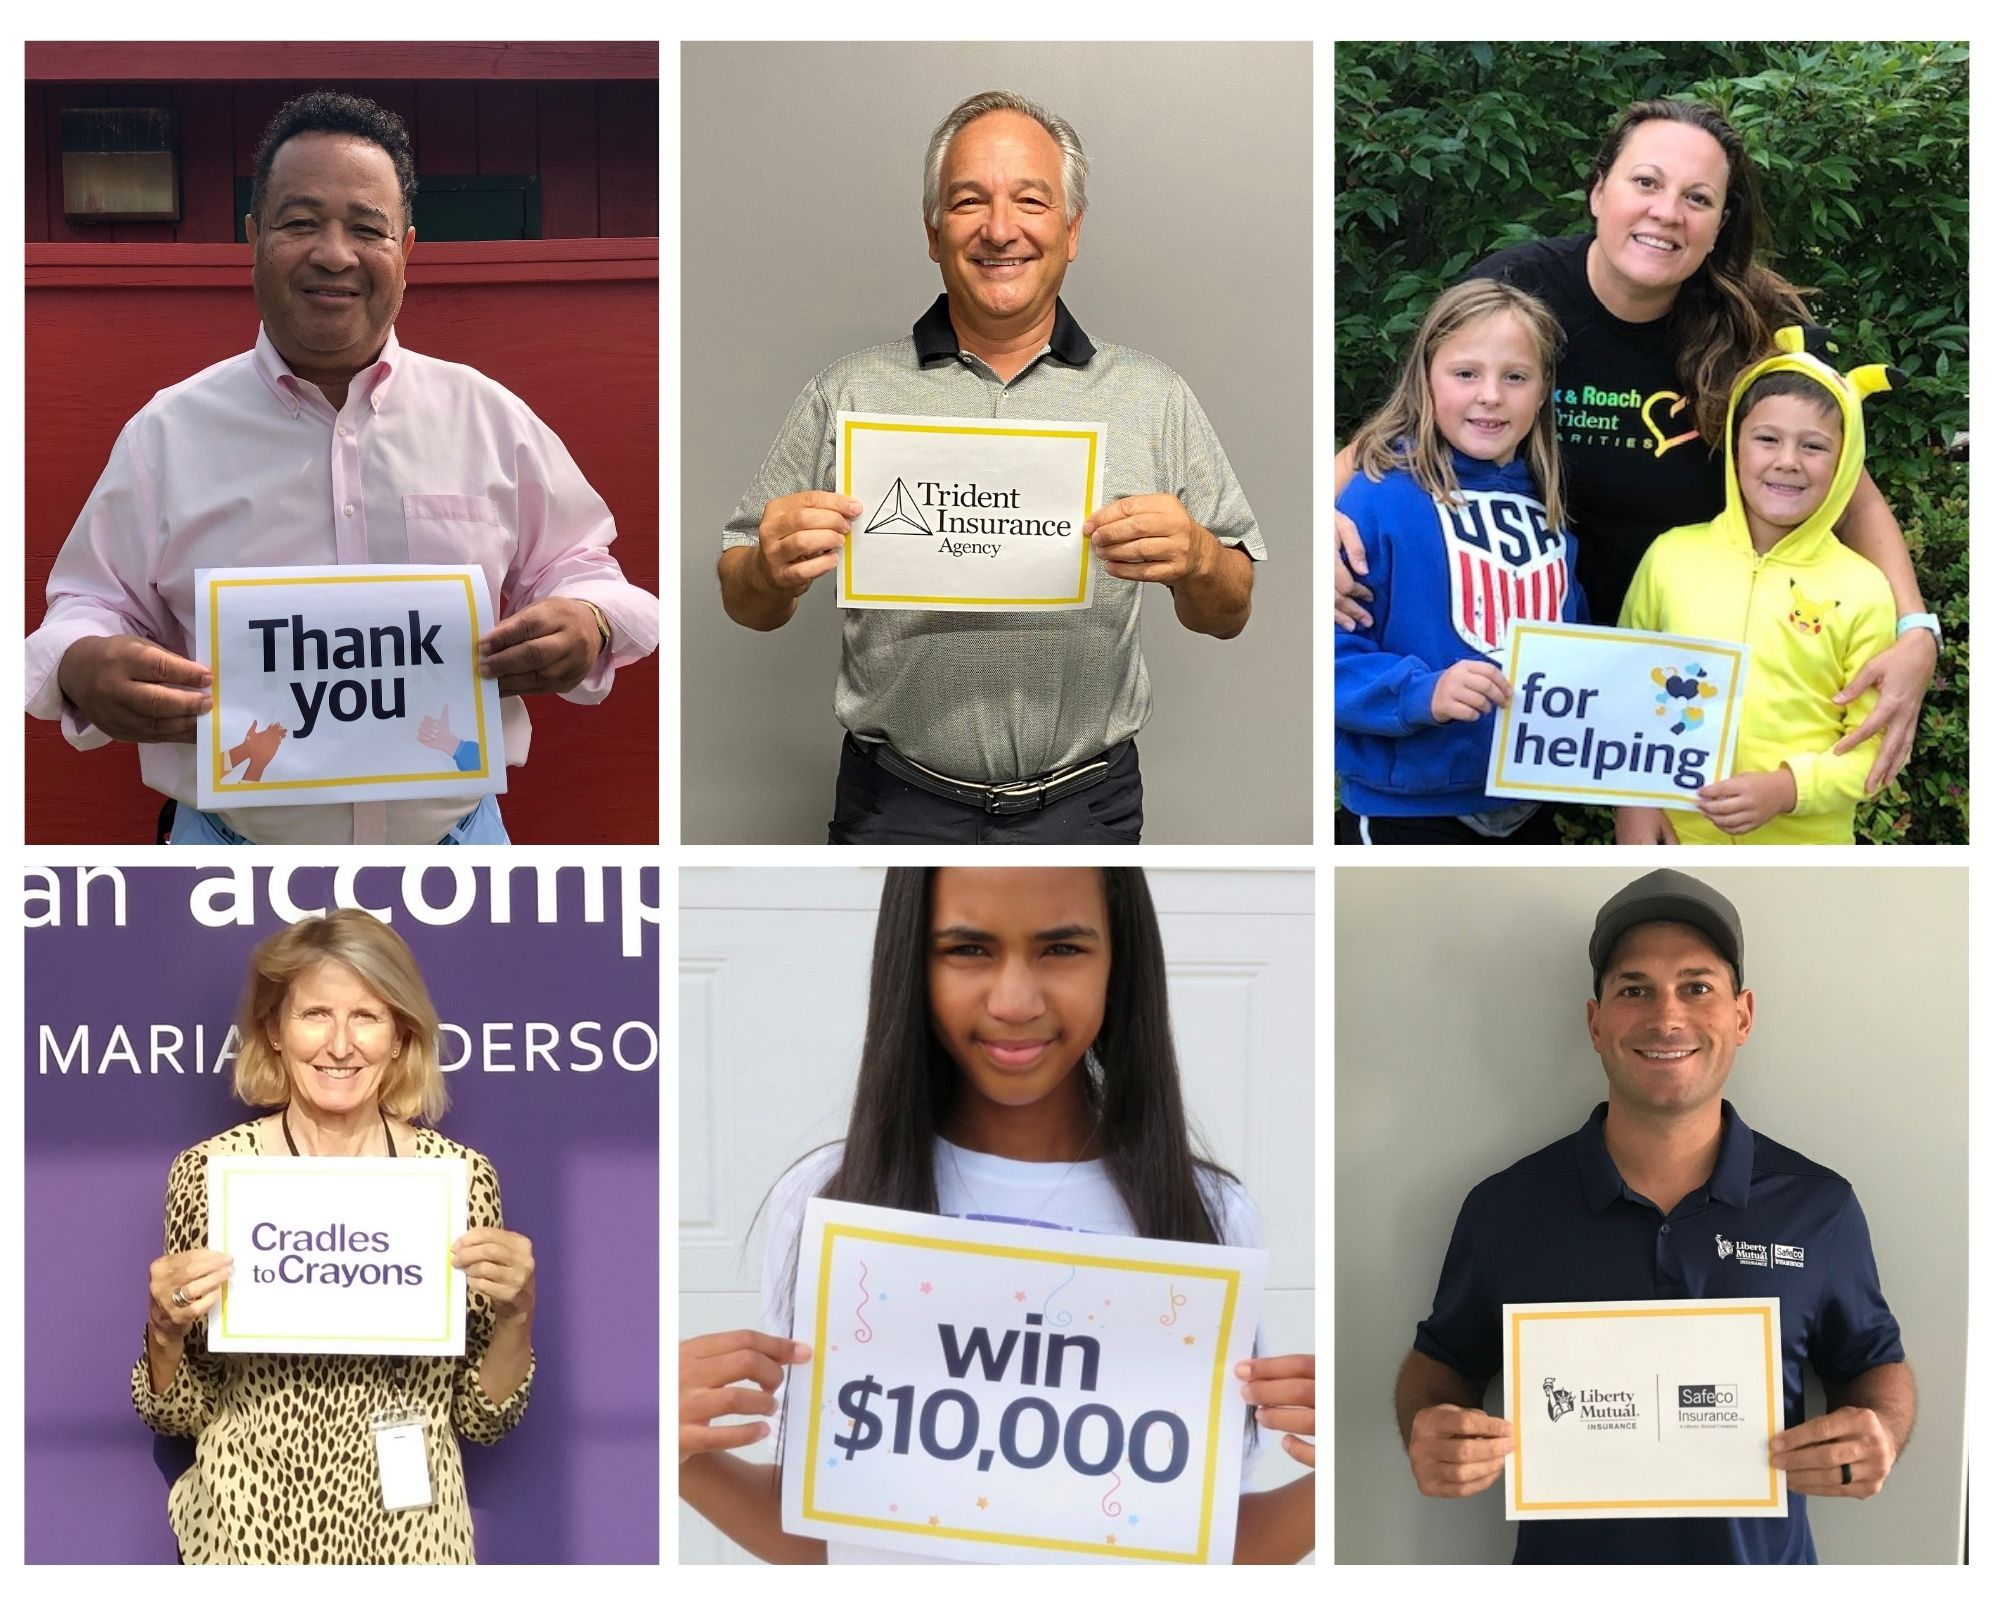 a Group holding signs that together reads Thank you Trident Insurance Agent for helping Cradles to Crayons win $10,000 - Safec0